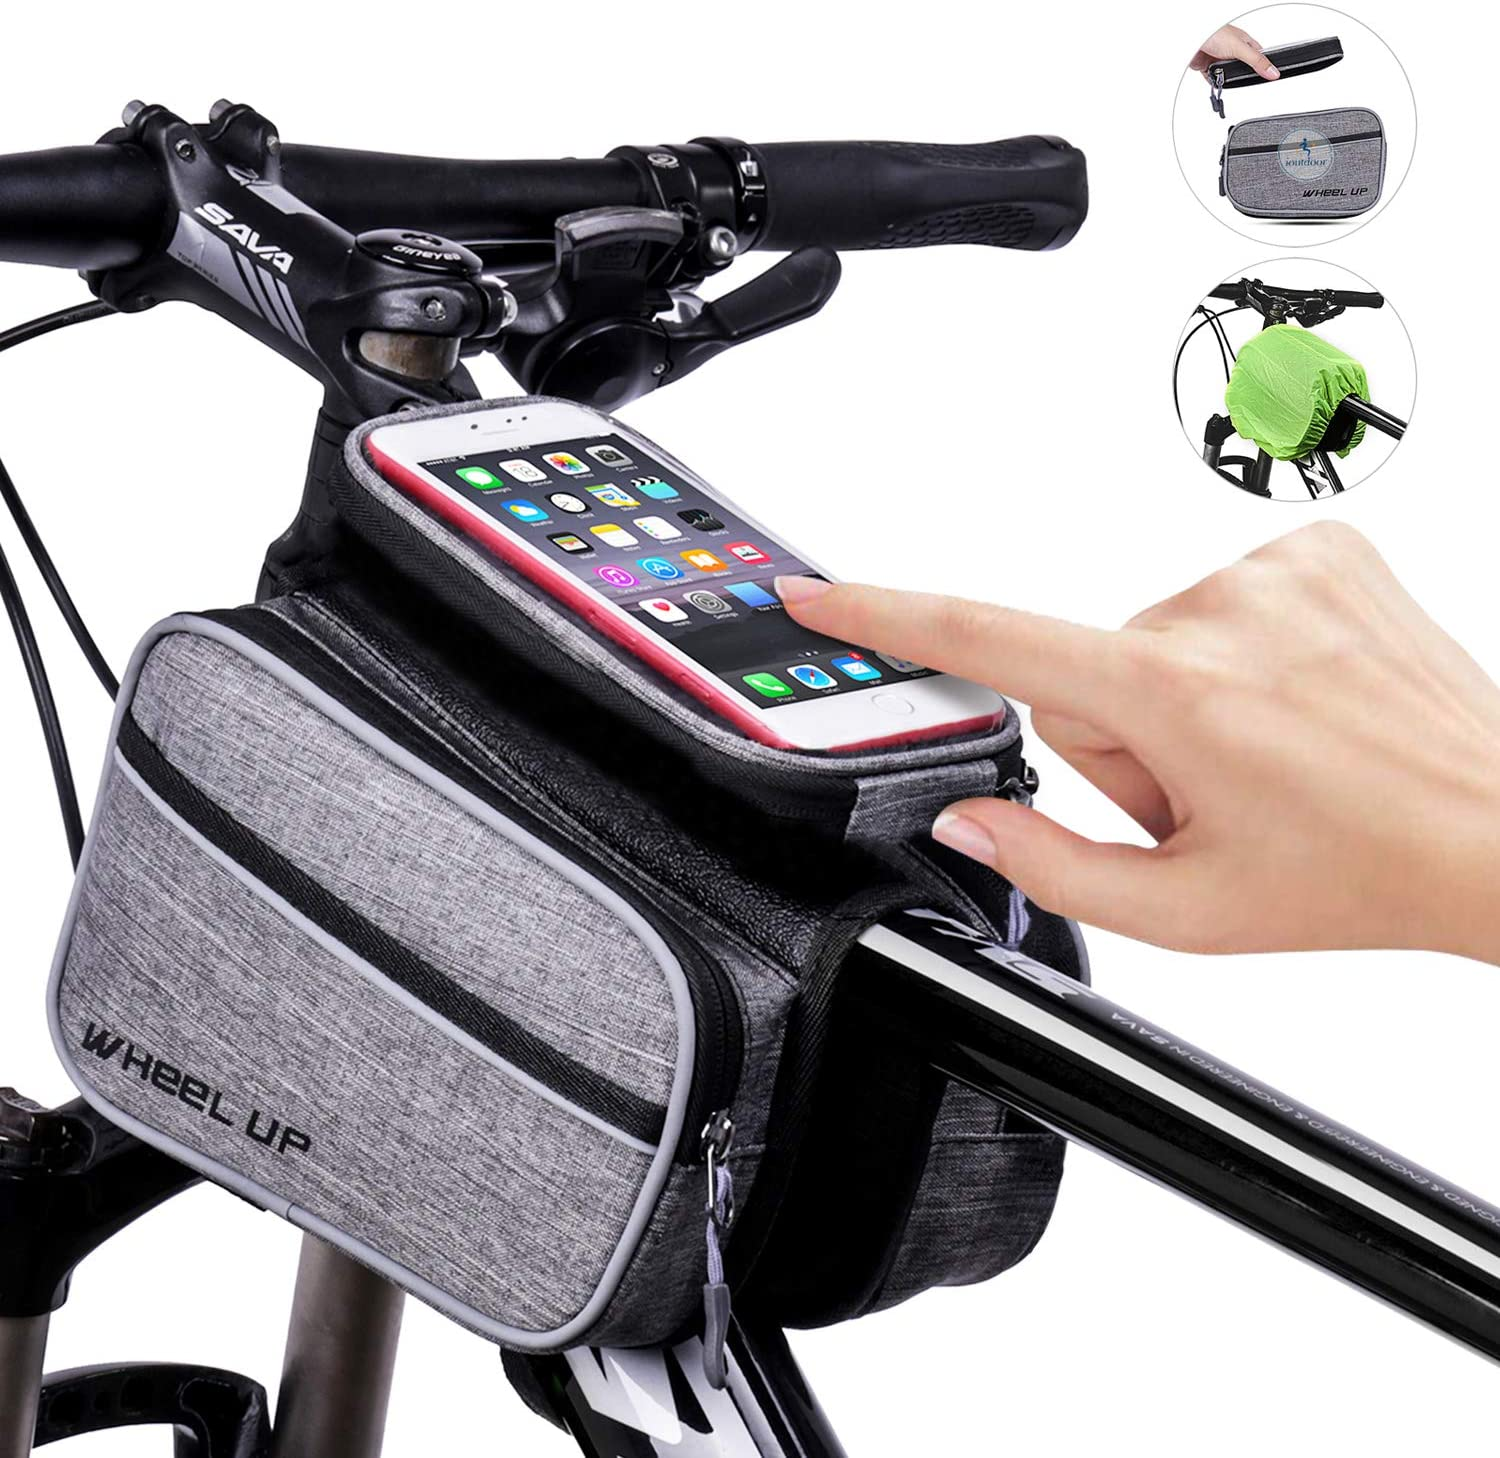 ioutdoor Bike Frame Bag Bike Front Tube Handlebar Bag Bicycle Bag Bike Pouch with Detachable Touch Screen Phone Case for iPhone X 8 7 plus 7 6s 6 plus 5s Samsung